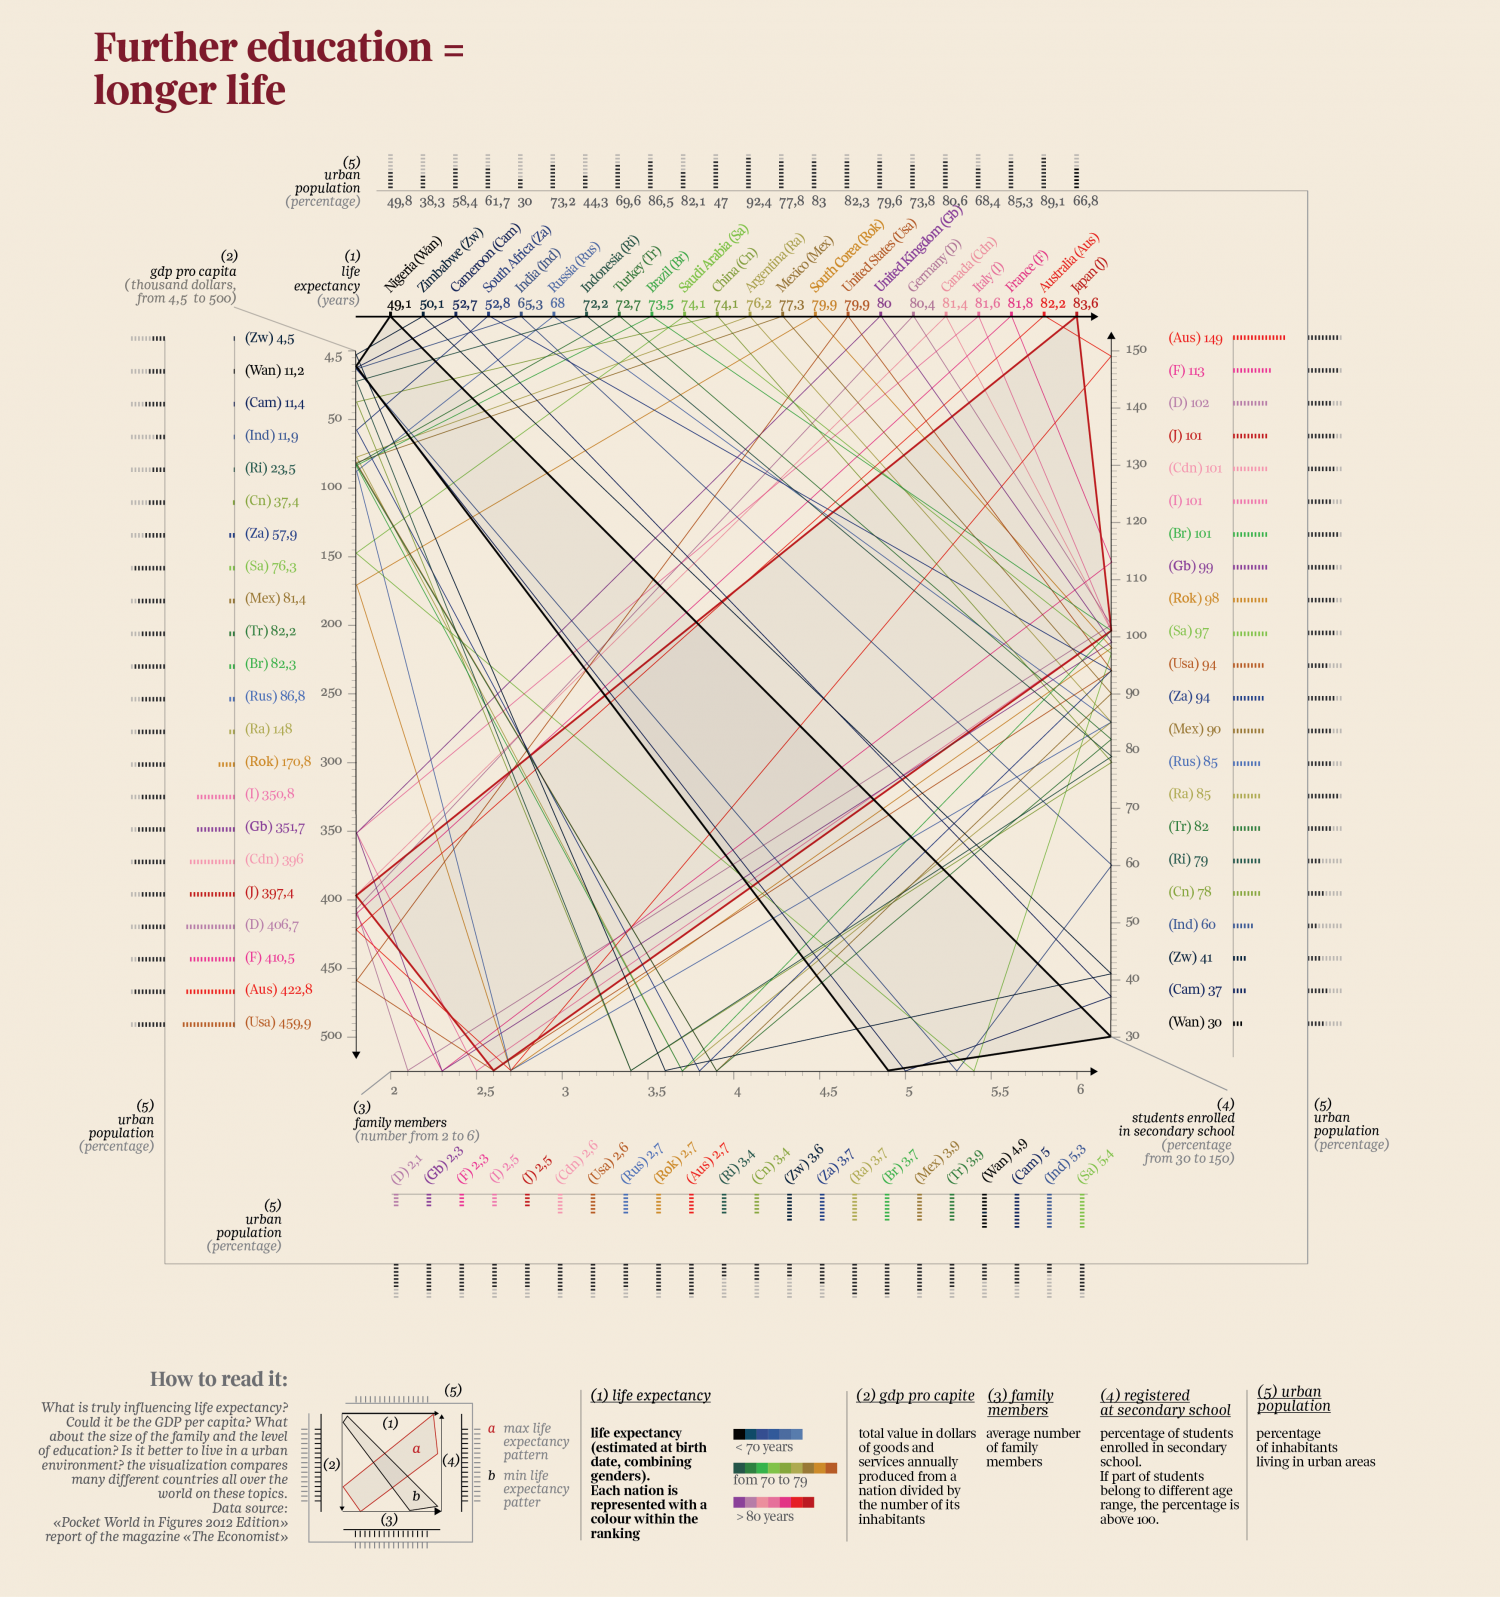 Further Education = Longer Life (English) Infographic